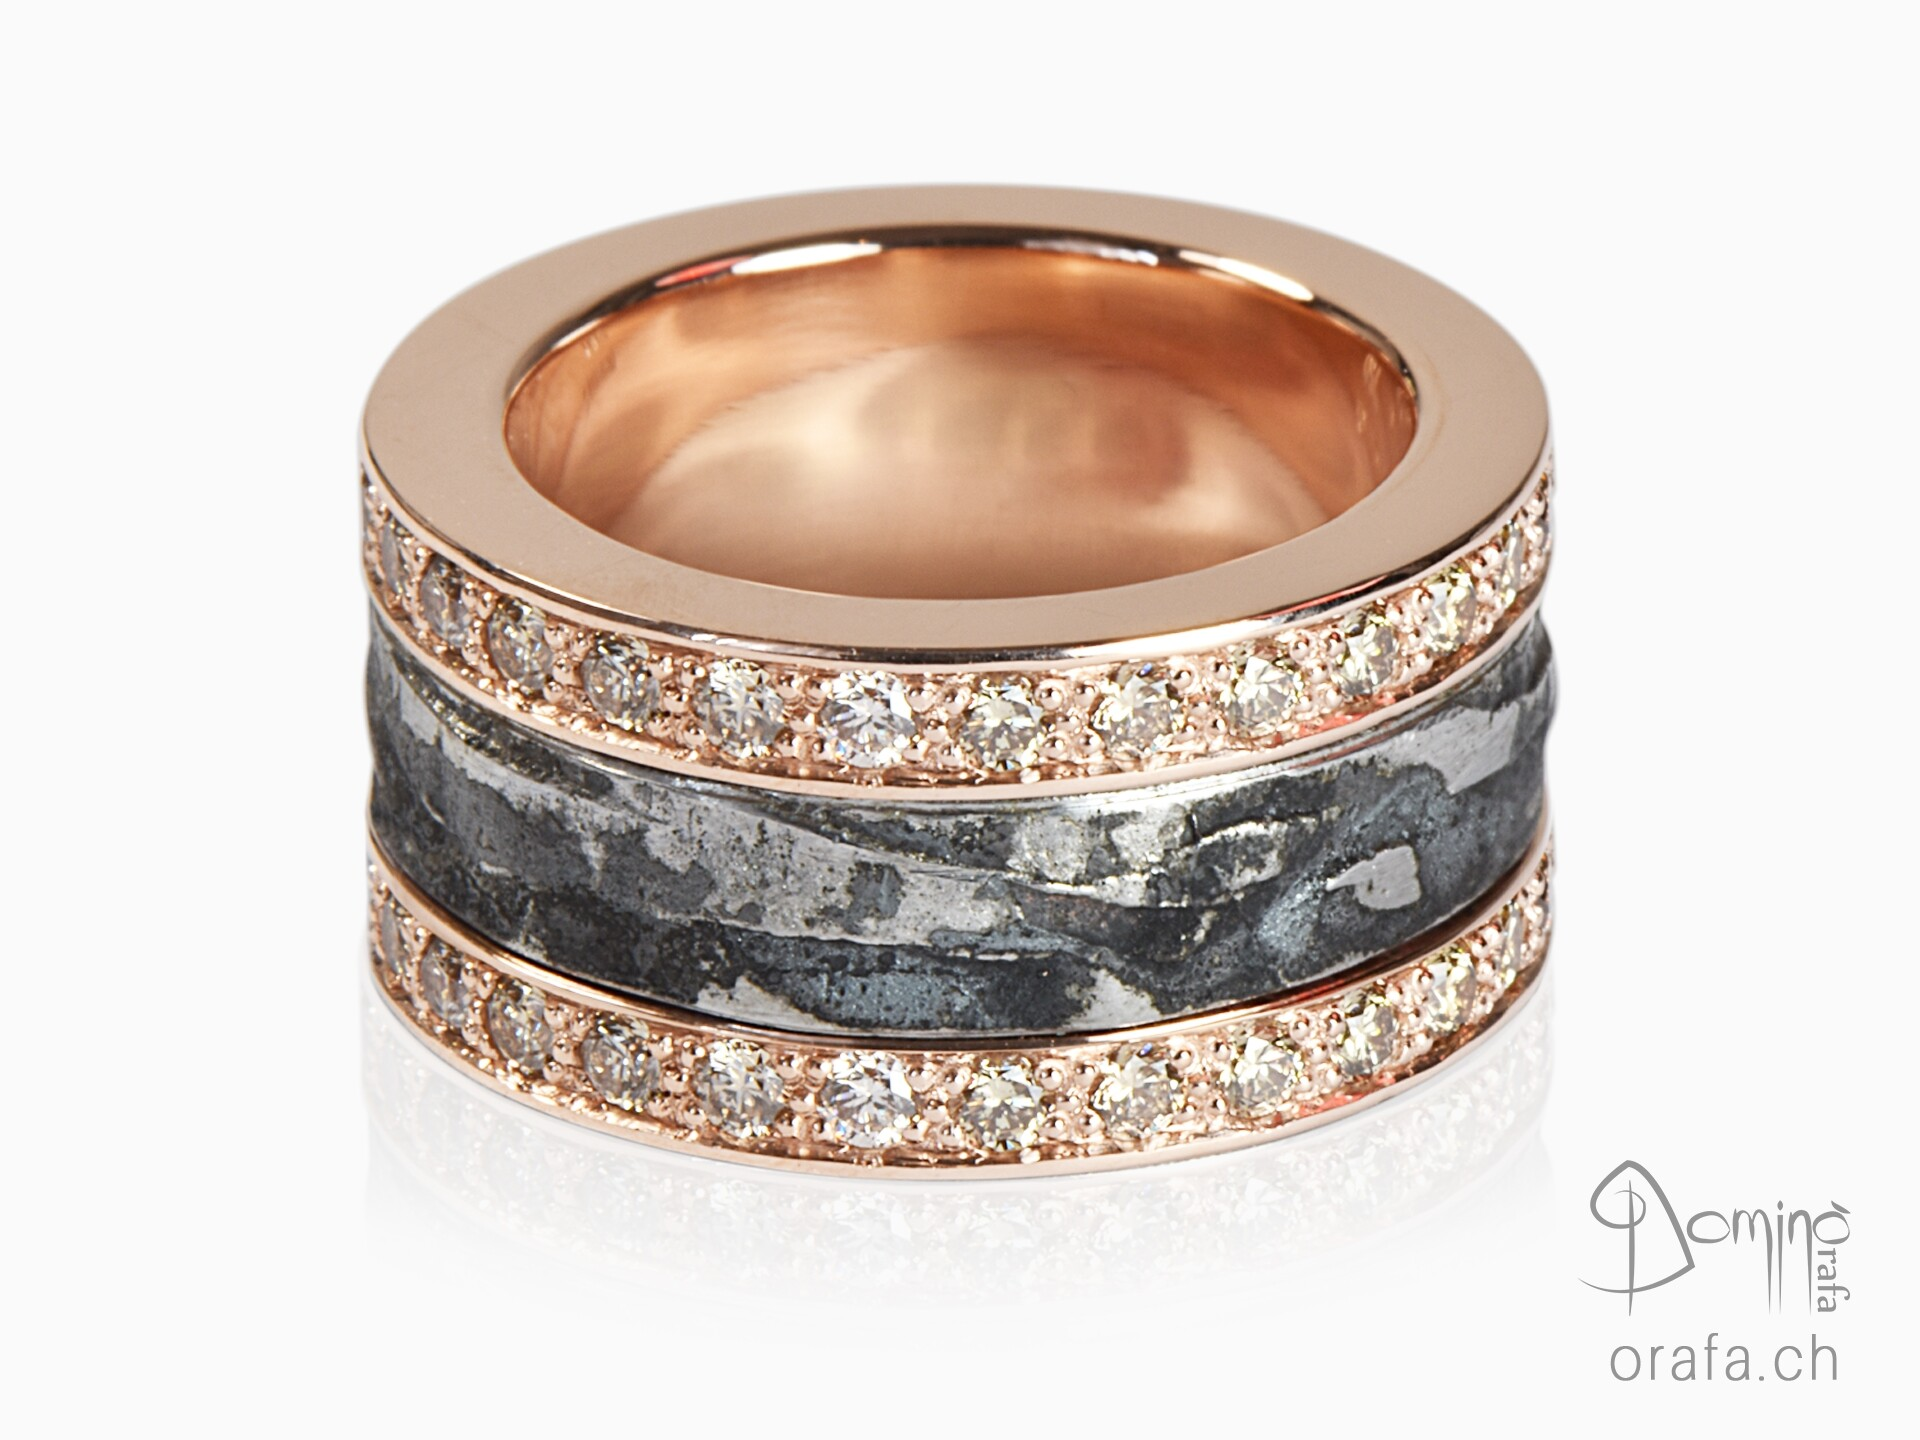 Ferro Prezioso ring and brown diamond